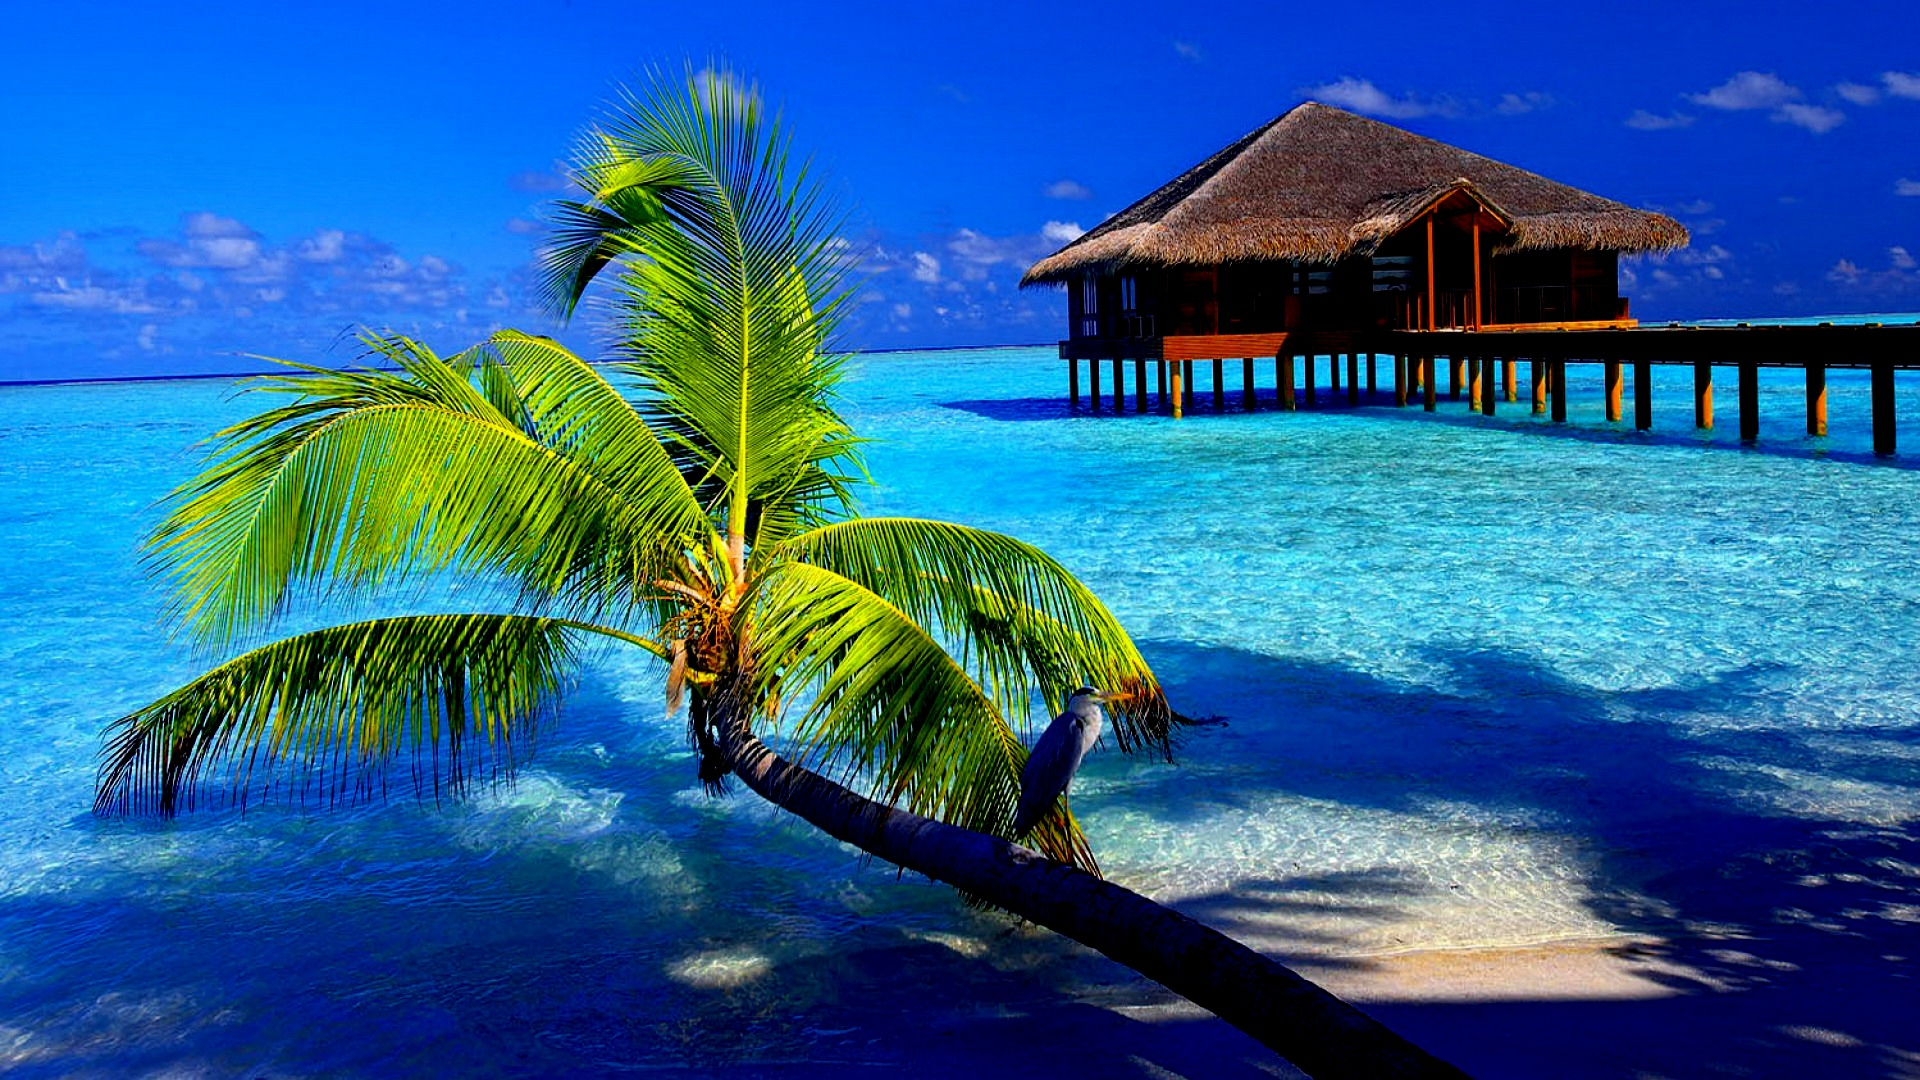 10 Best Tropical Beach Desktop Backgrounds Full Hd 1920: Desktop Wallpaper Beautiful Tropical Scenes